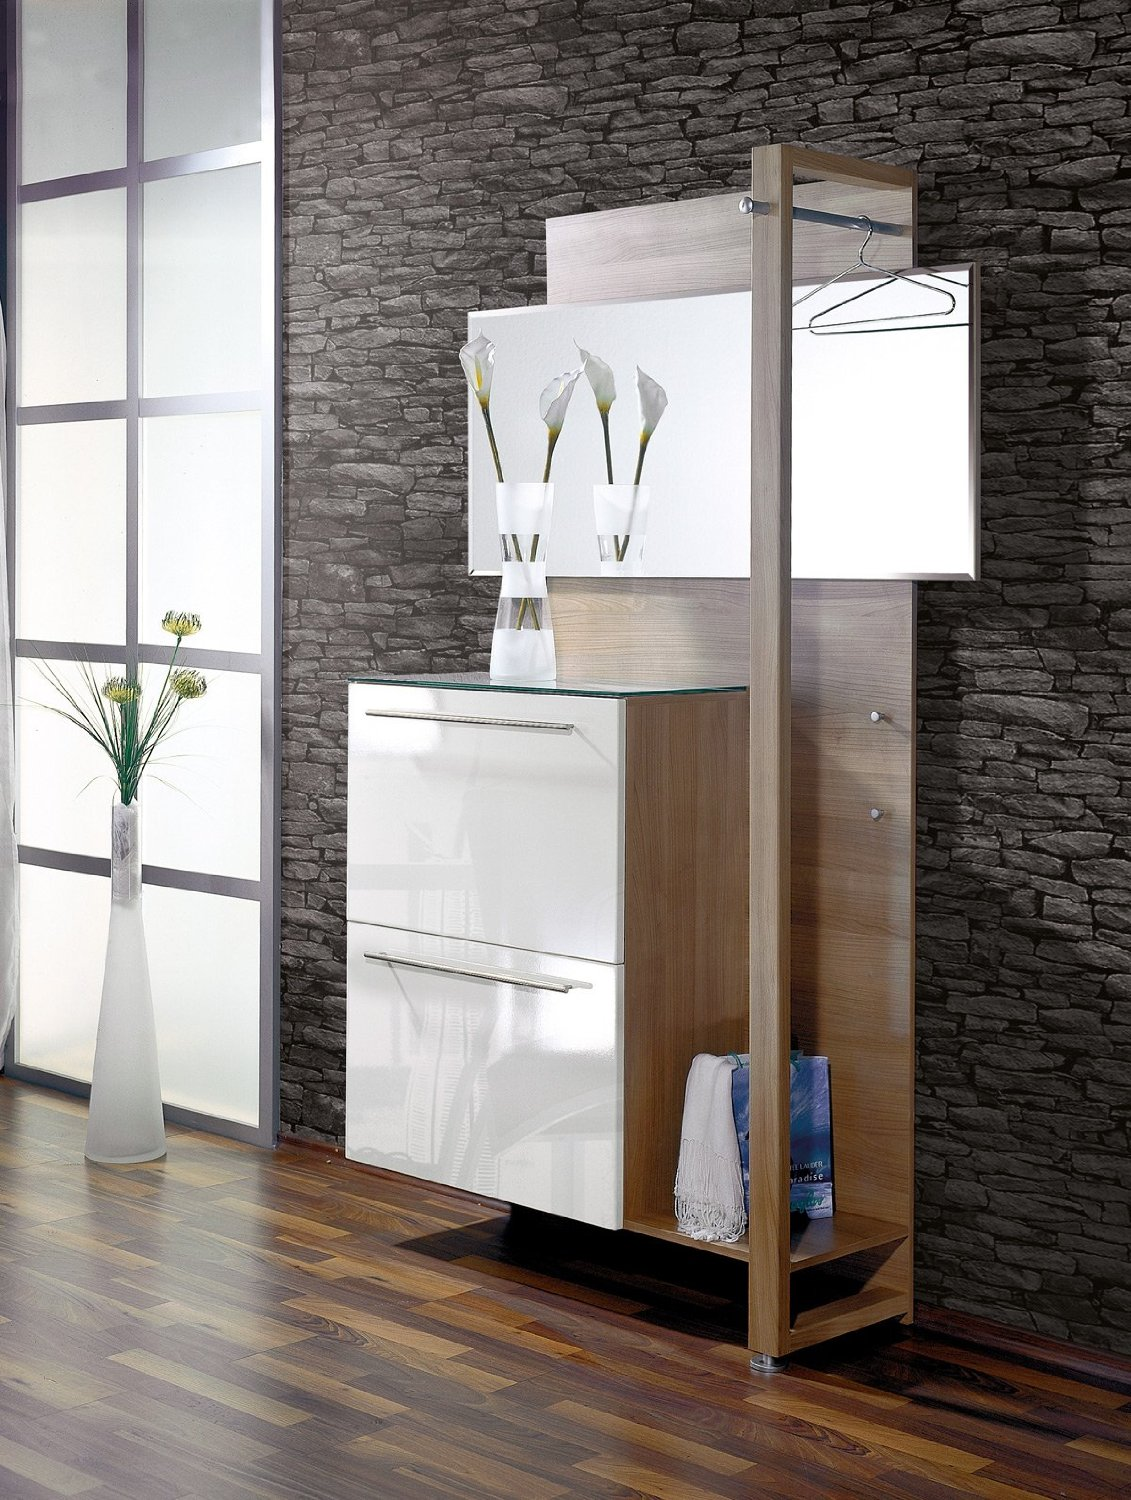 small-modern-hallway-storage-design-for-contemporary-narrow-hallway-with-wall-mirror-clothing-hooks-and-stone-wall-ideas